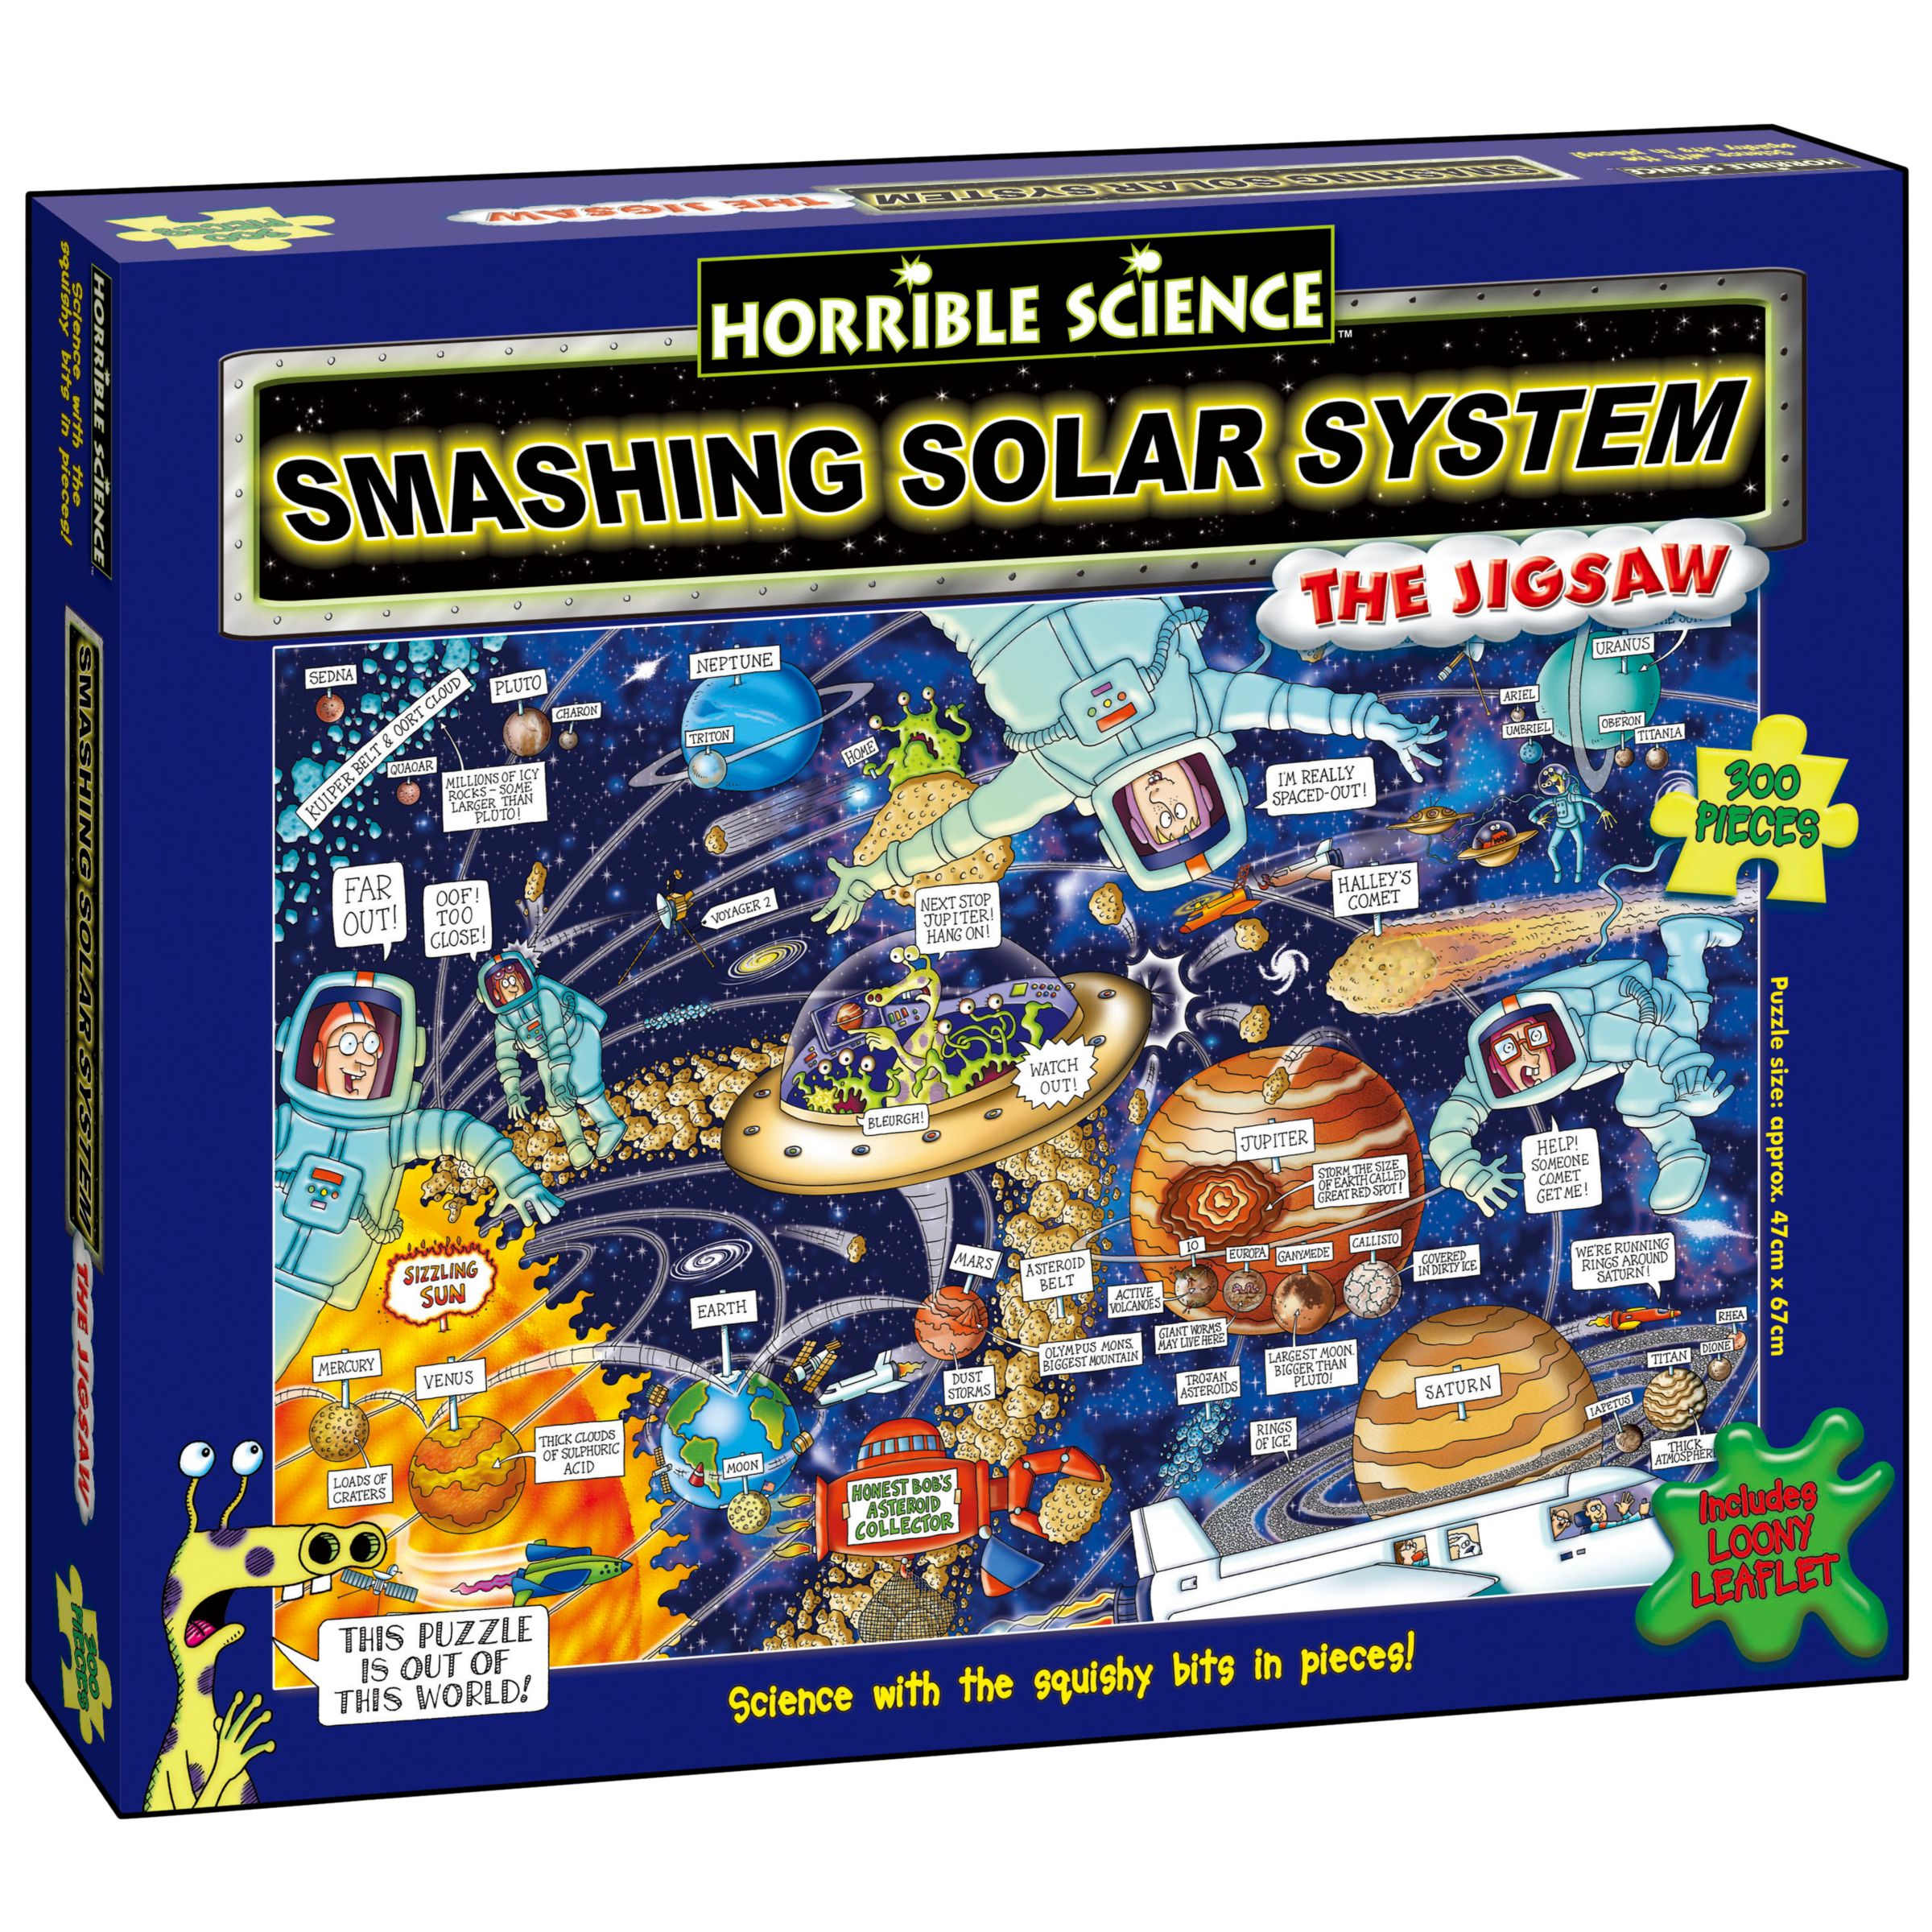 Horrible Science Smashing Solar System Jigsaw Puzzle, 300 Pieces